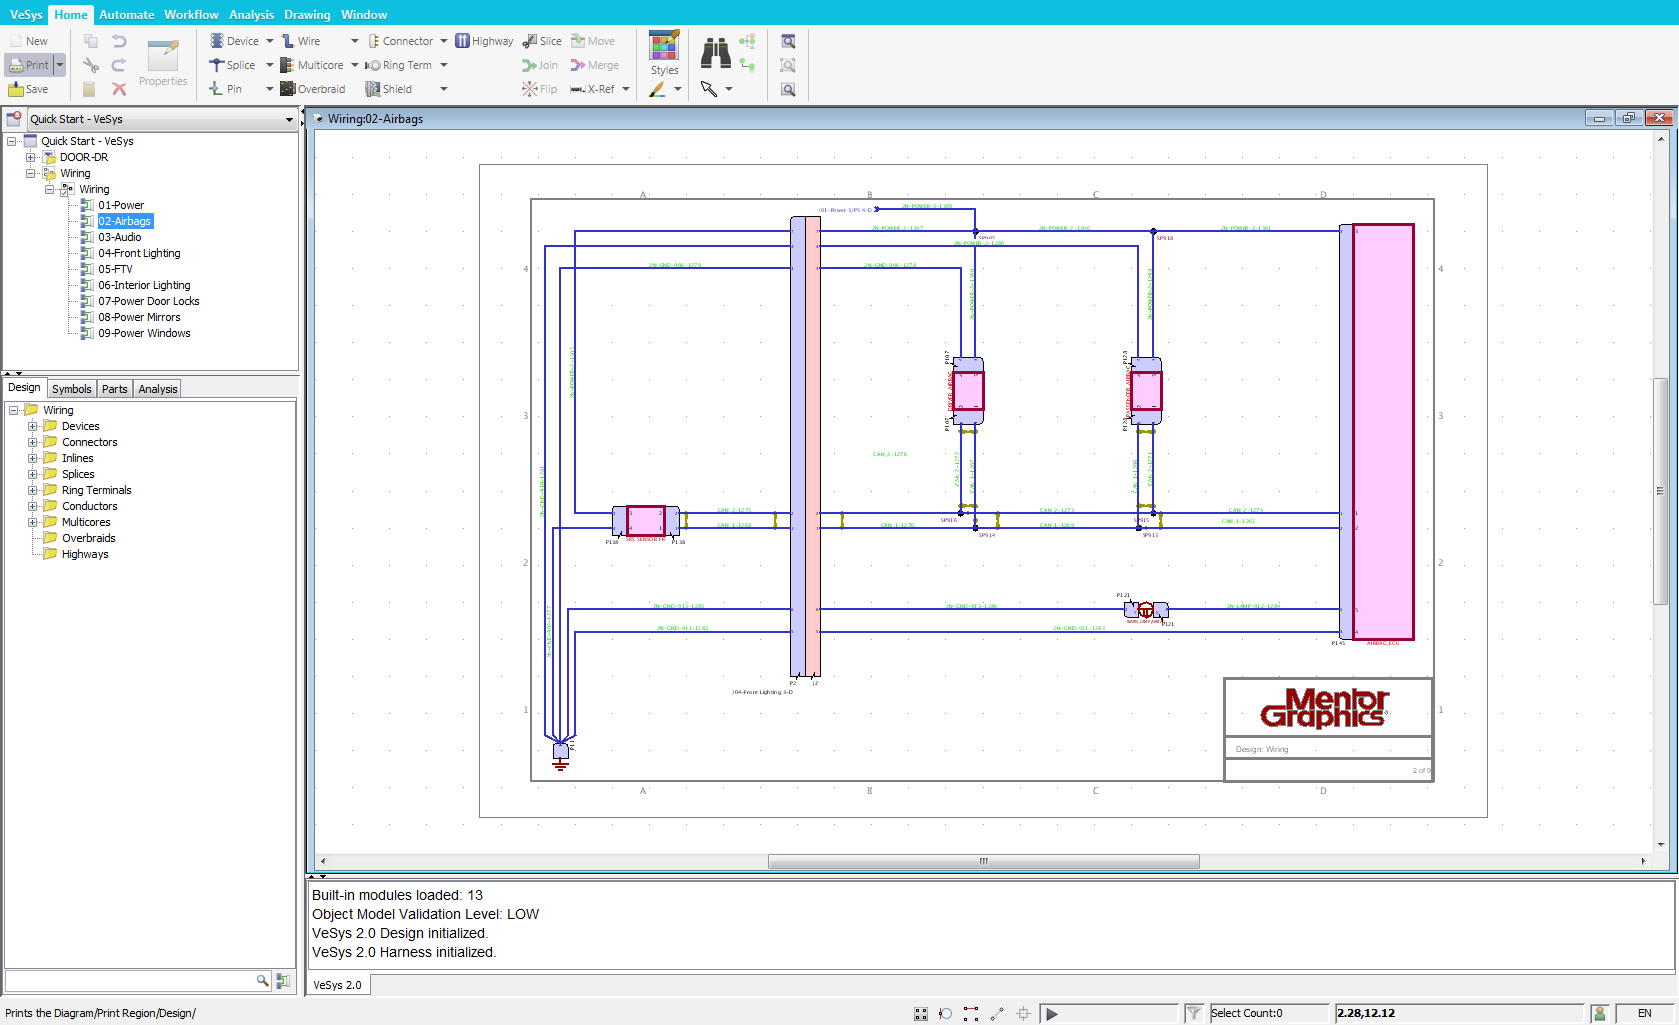 Vesys Design Mentor Graphics Basic Automotive Wiring Diagram Is Graphical Authoring Environment For Creating Vehicle Diagrams Via An Intuitive User Interface And Electrically Intelligent Symbols